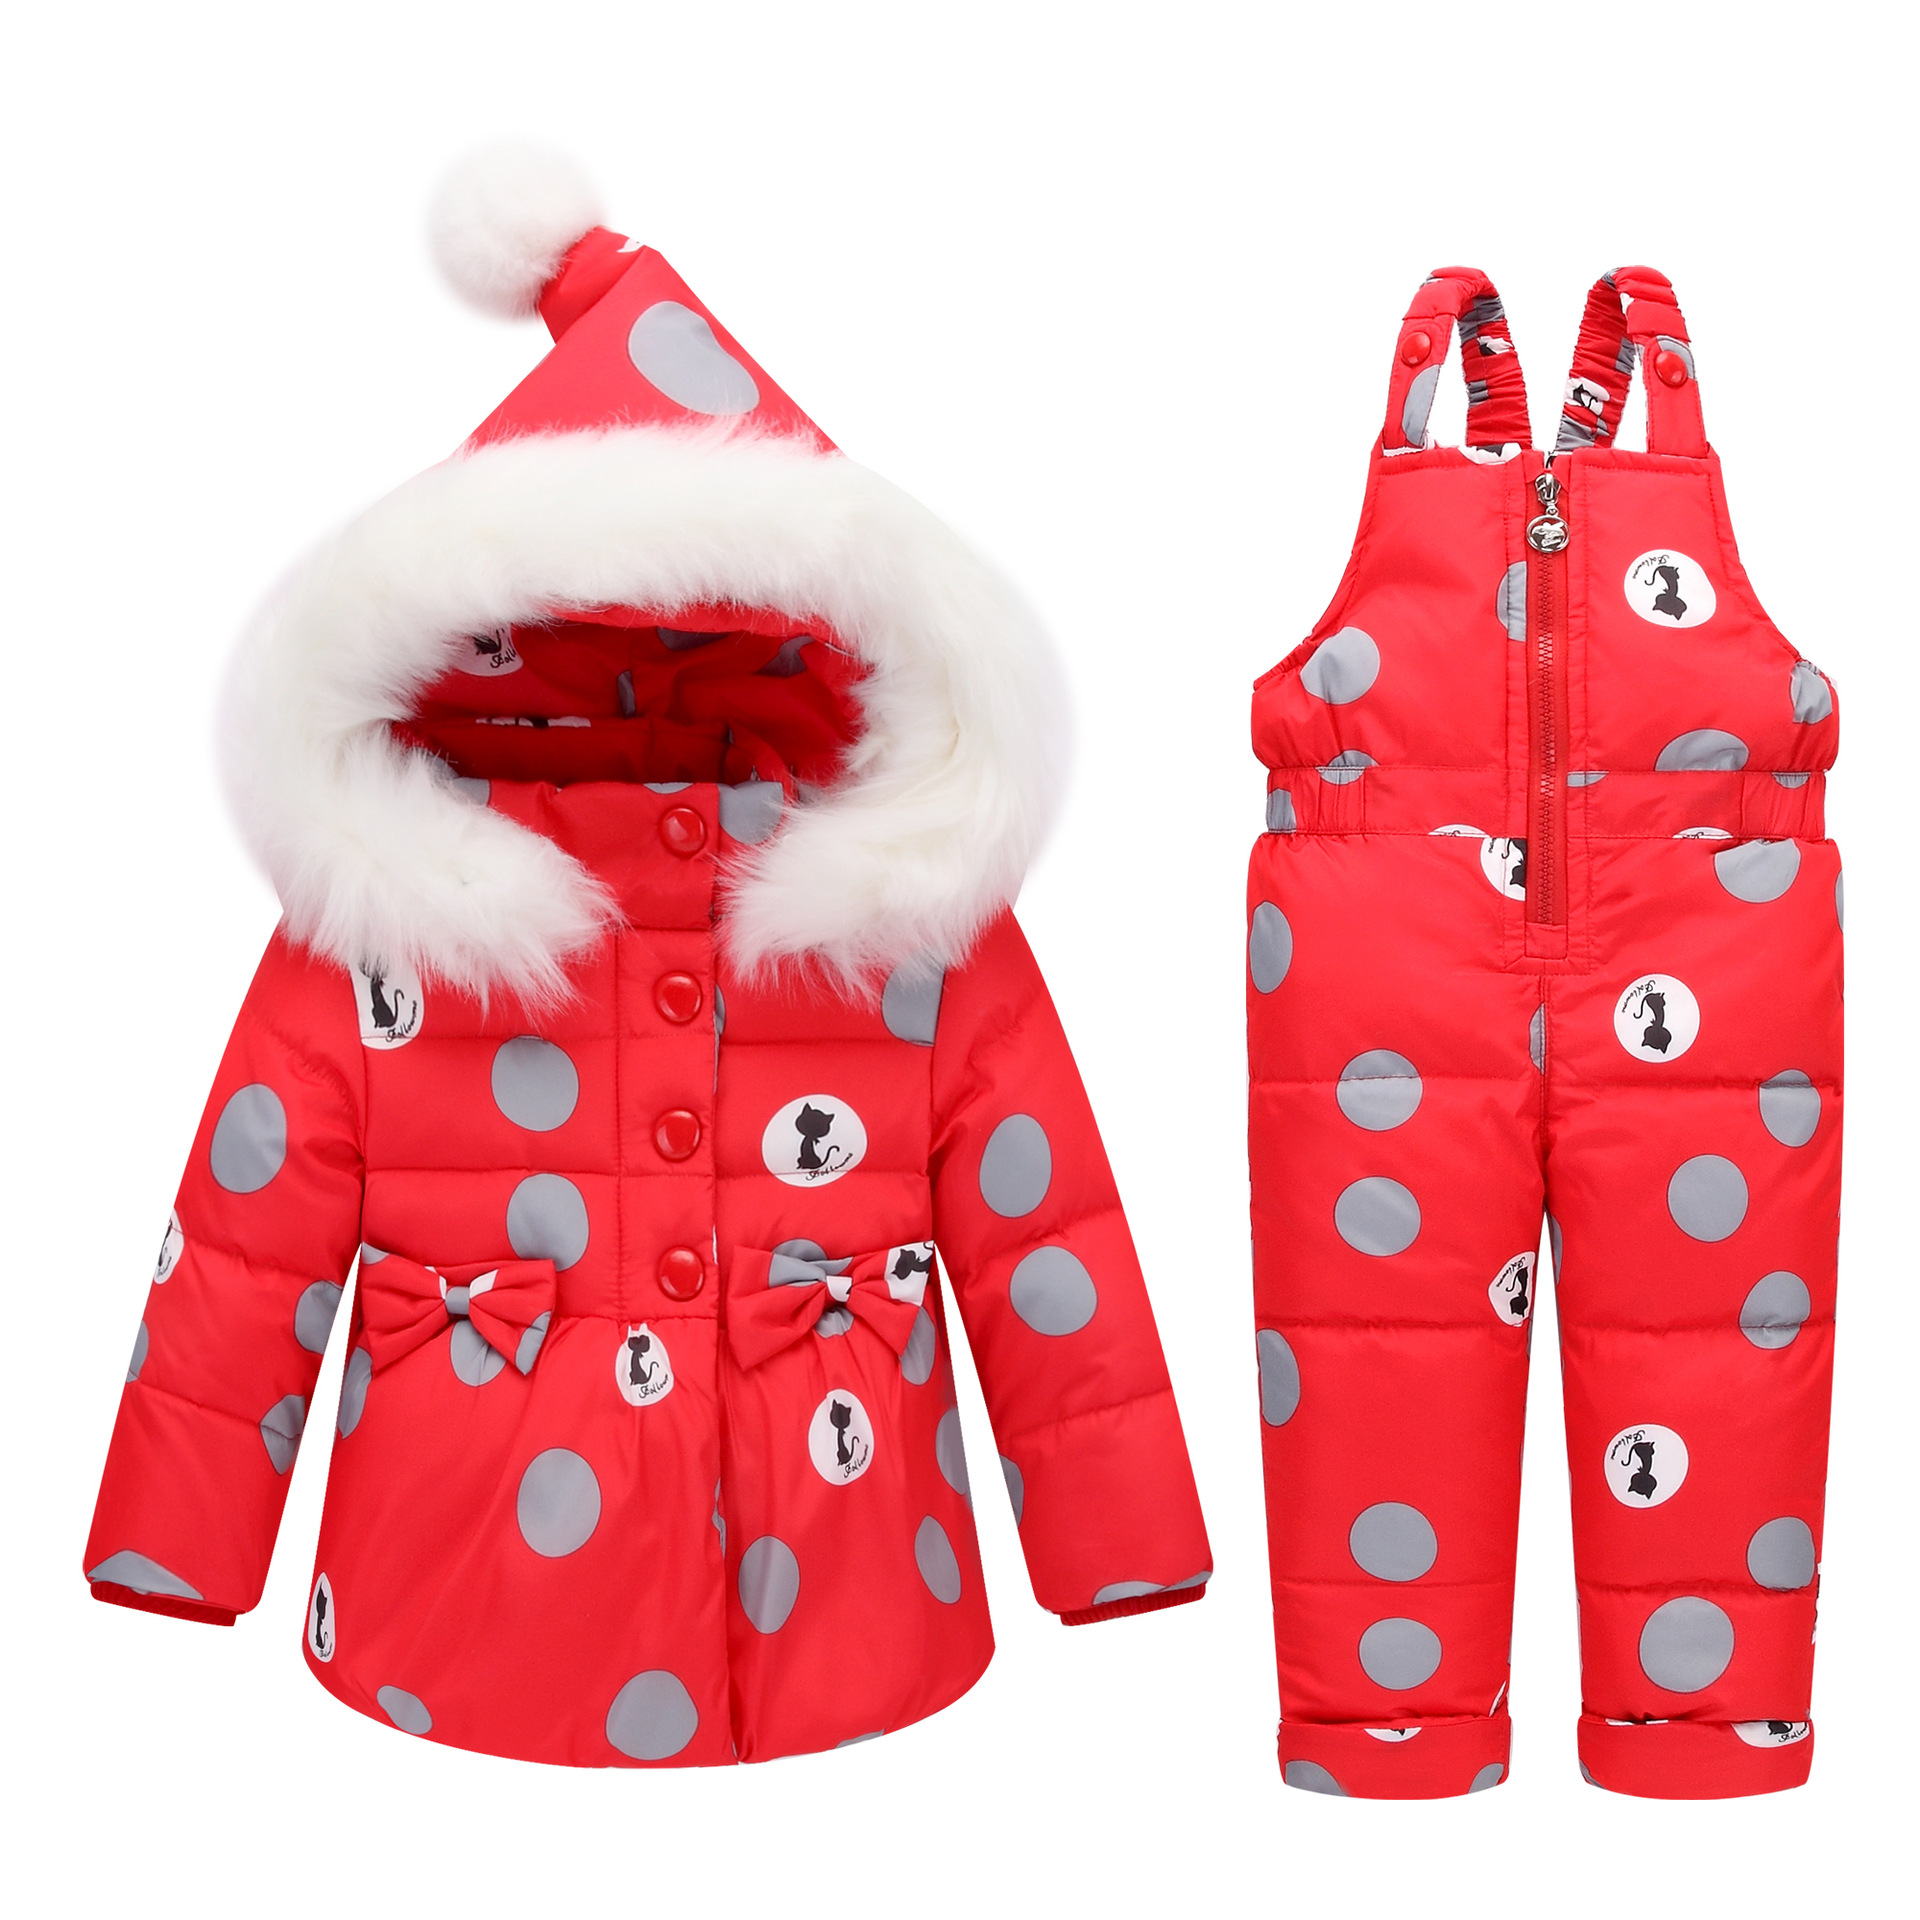 Children Girls Clothing Sets Winter Hooded Duck Down Jacket + Trousers Waterproof Snowsuit Warm Kids Baby Clothes 2016 winter boys ski suit set children s snowsuit for baby girl snow overalls ntural fur down jackets trousers clothing sets